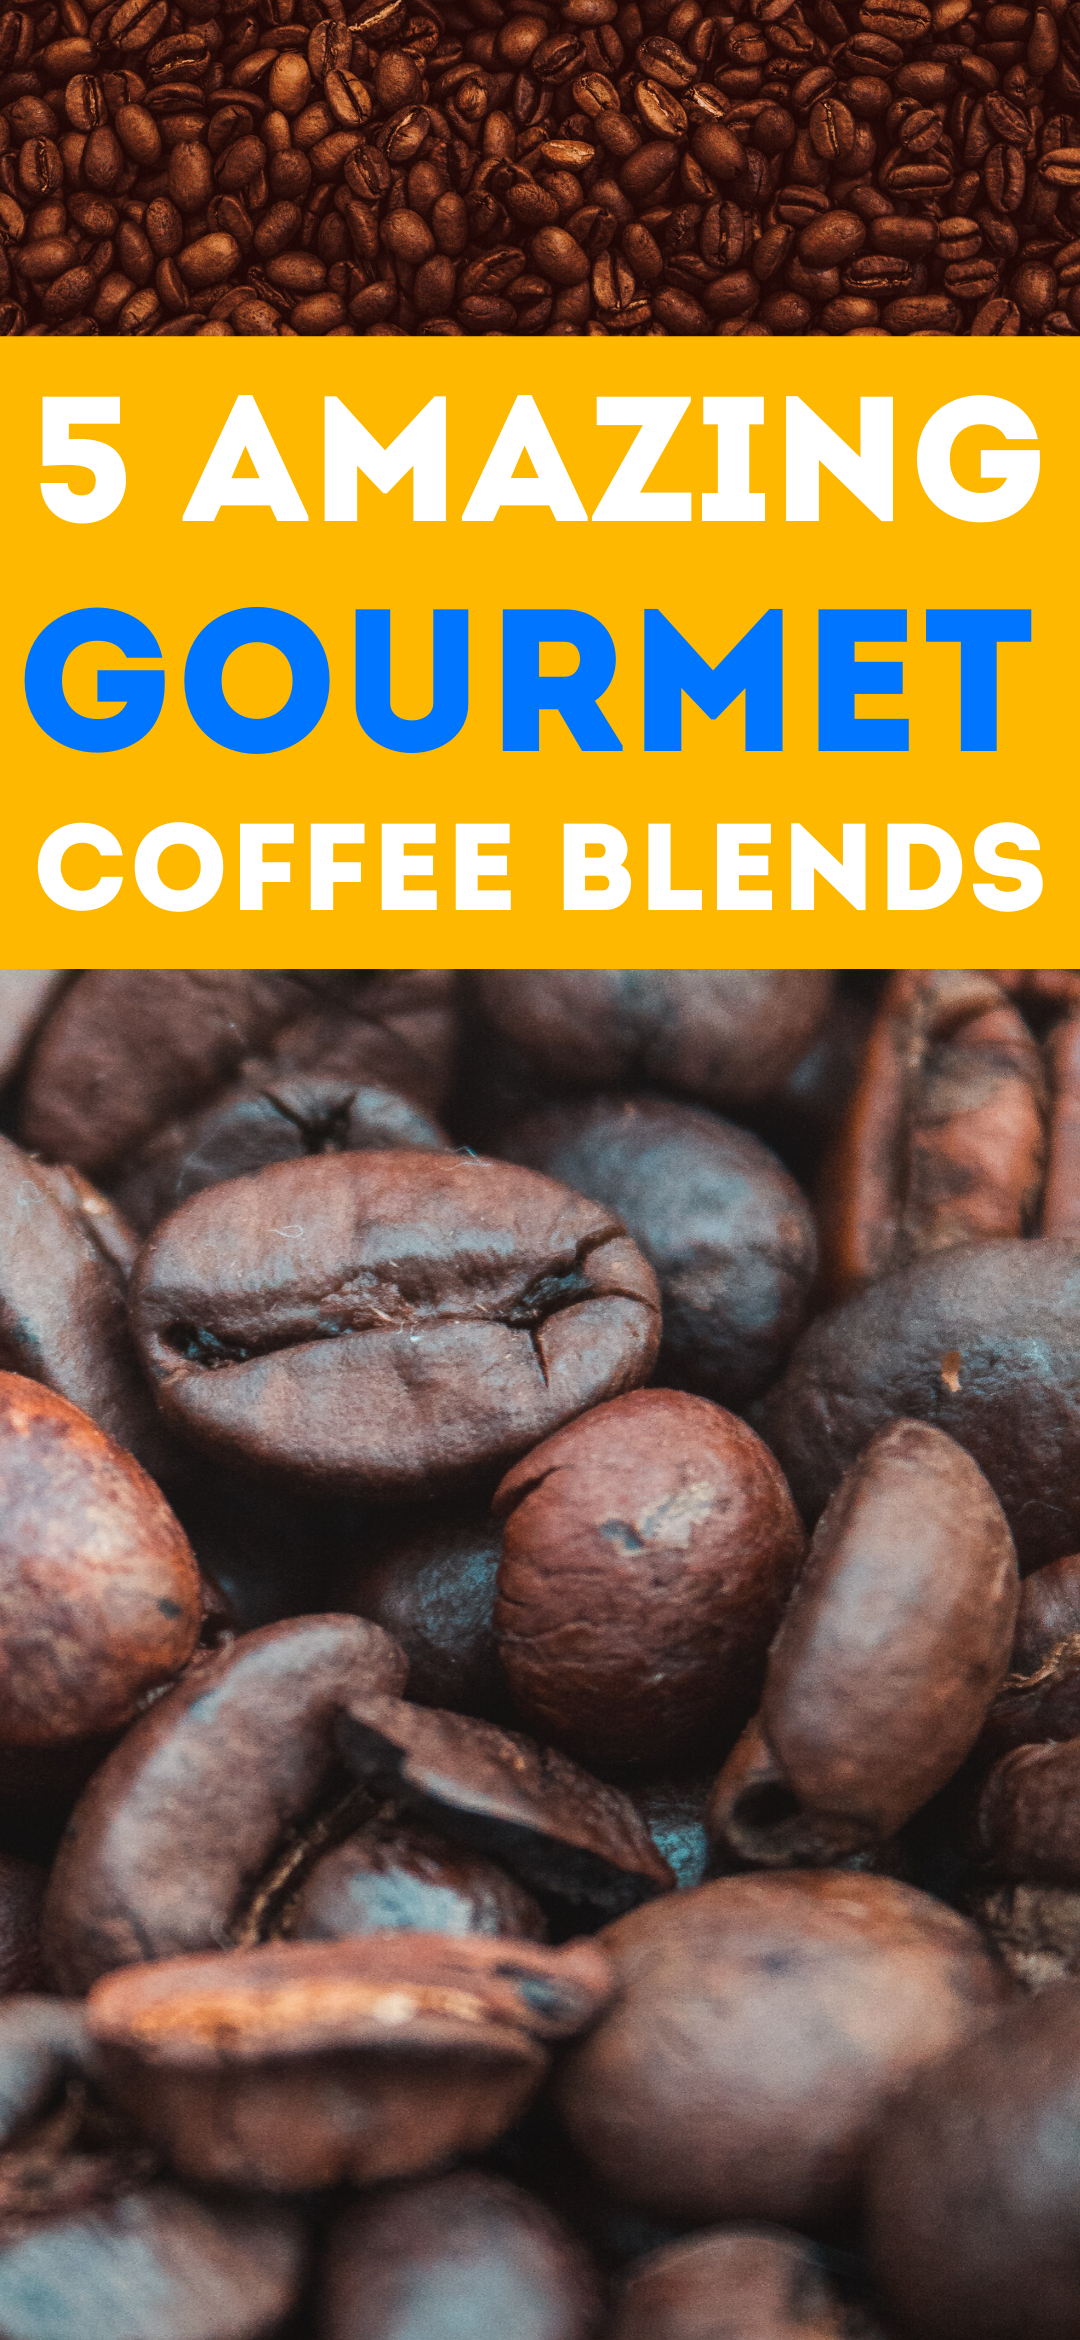 5 Amazing Gourmet Coffee Blends In 2020 Gourmet Coffee Blended Coffee Coffee Bean Decor